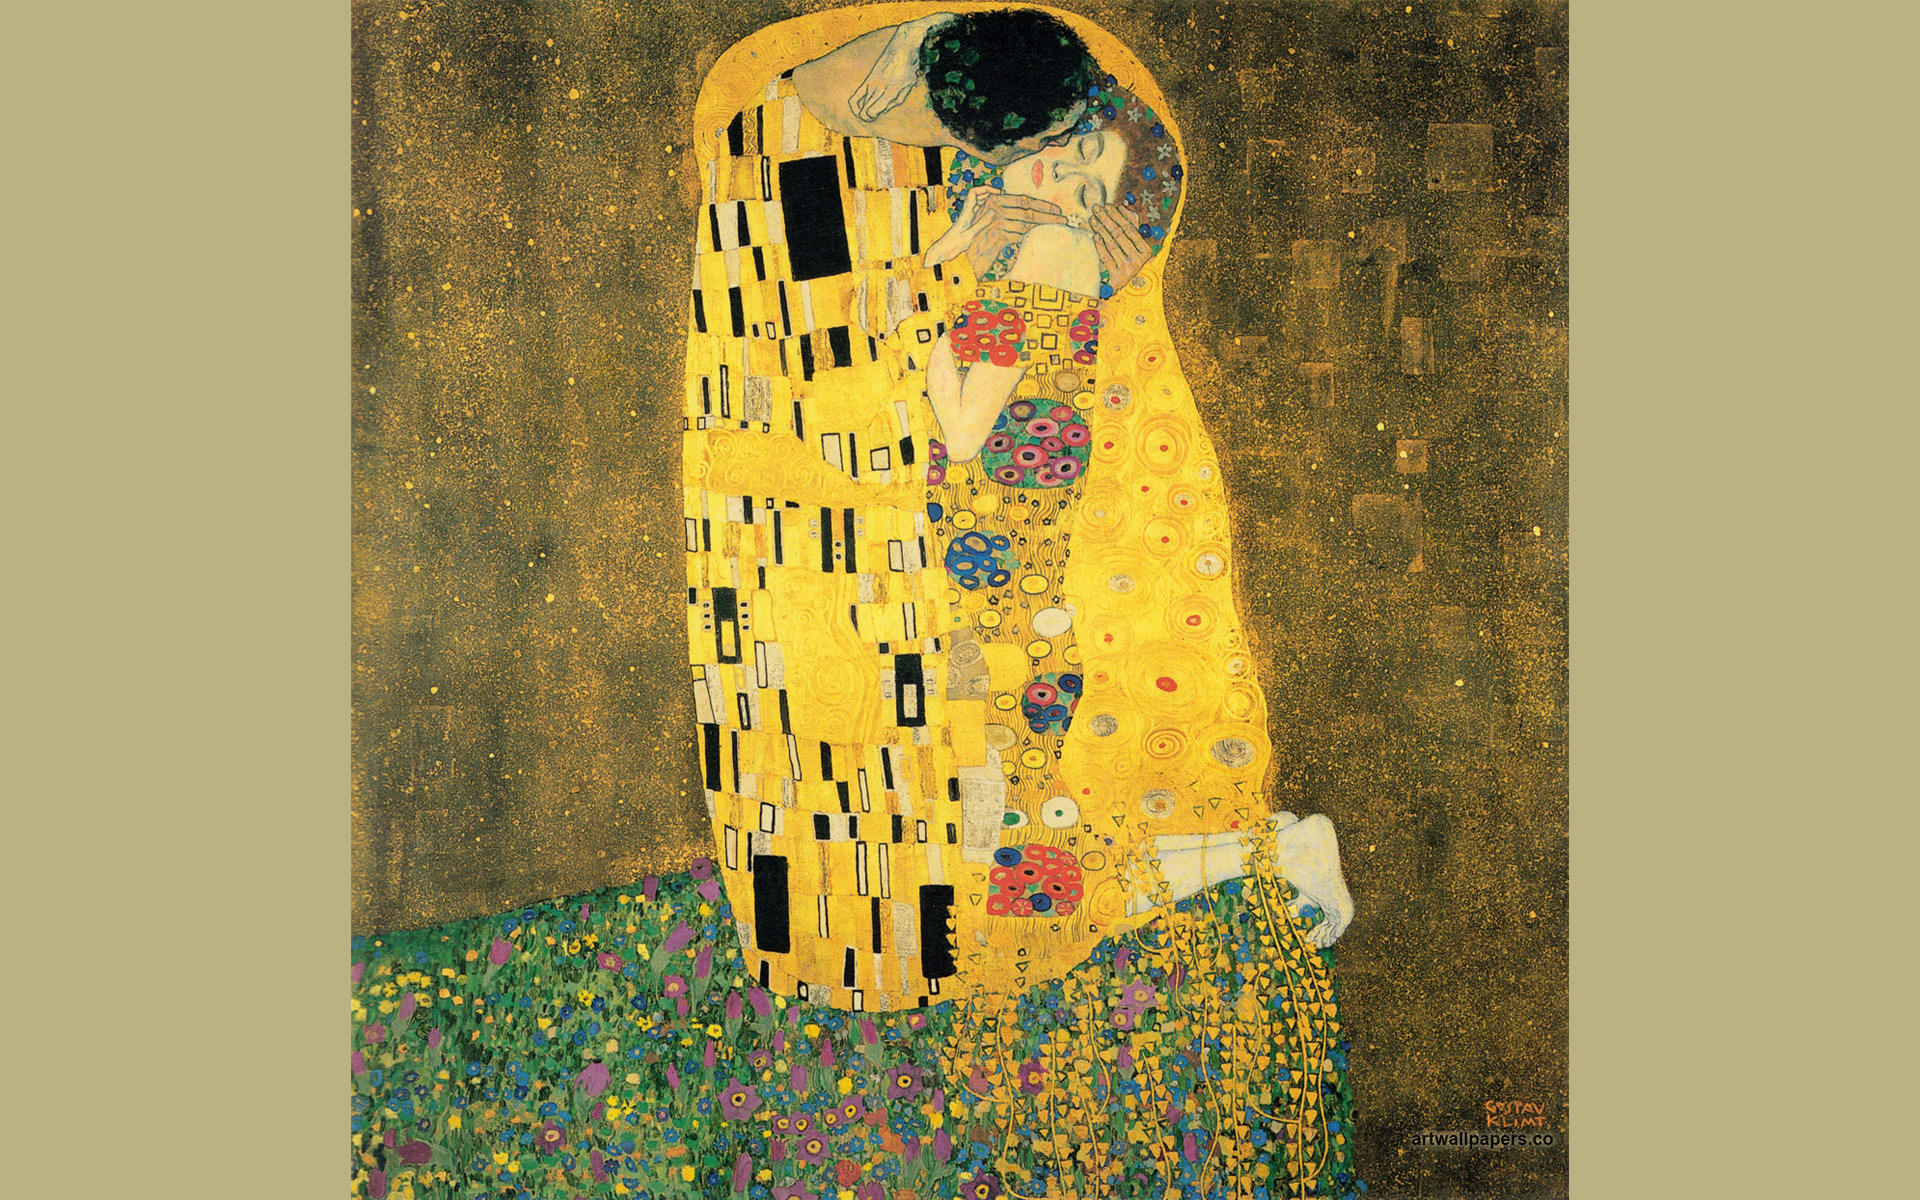 gustav klimt wallpaper wallpapersafari. Black Bedroom Furniture Sets. Home Design Ideas